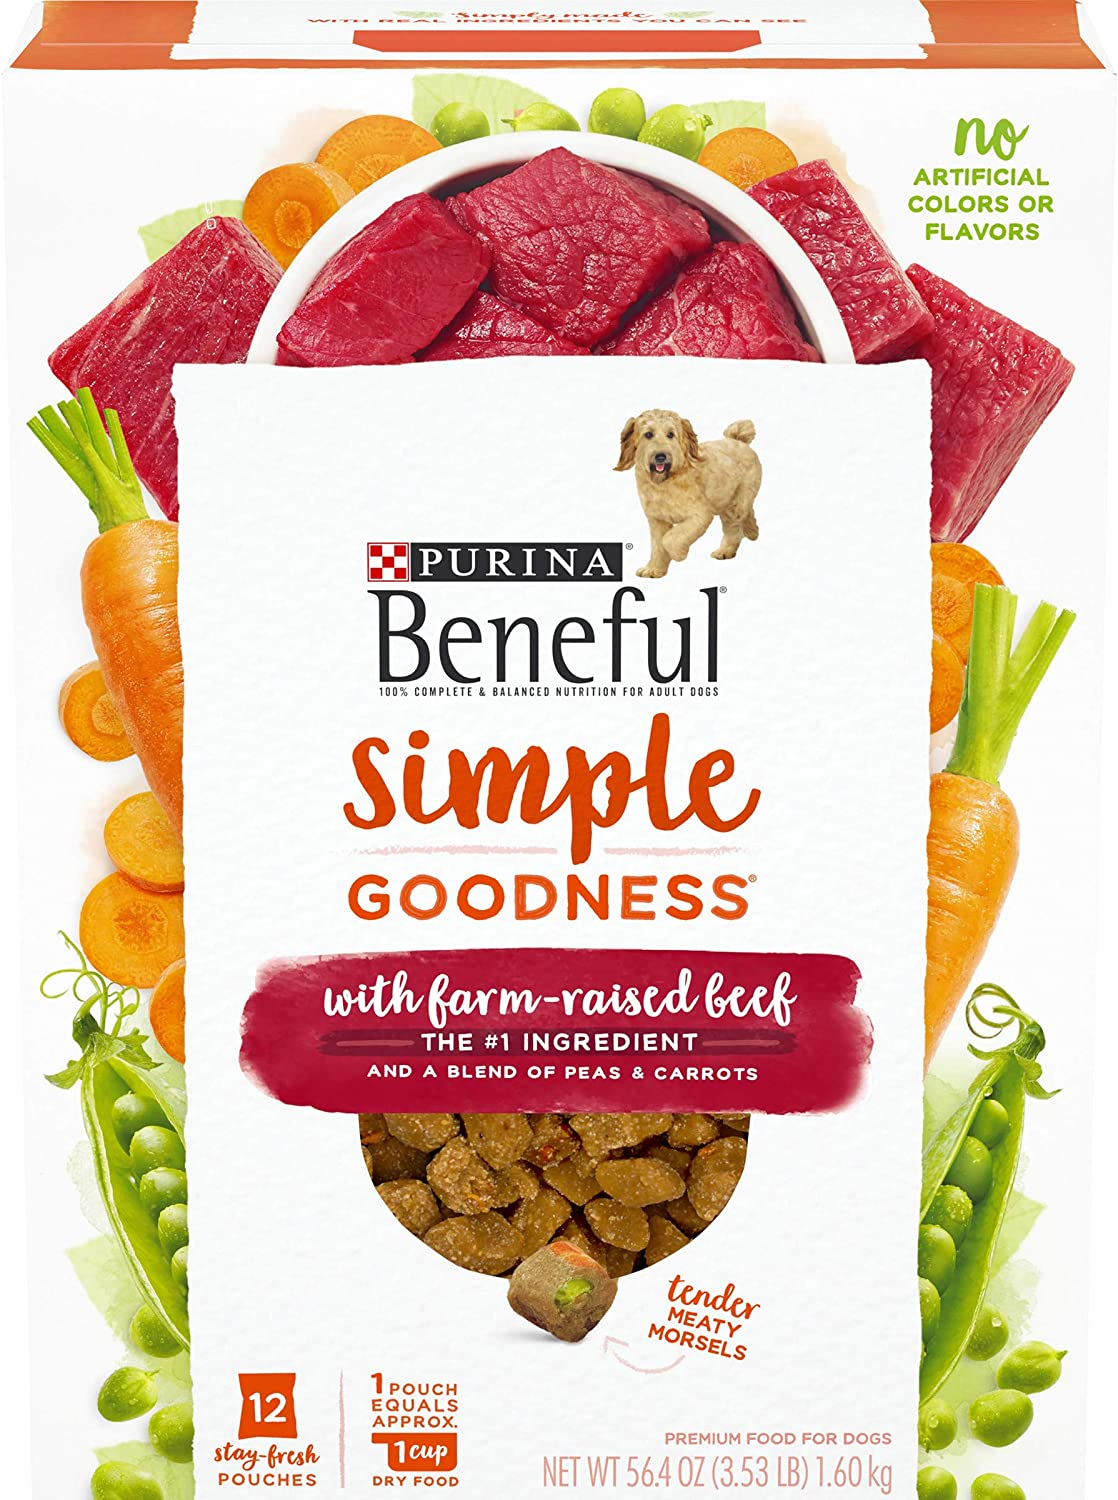 Purina Beneful Dry Dog Food, Simple Goodness With Farm Raised Beef - (4) 12 ct. Boxes